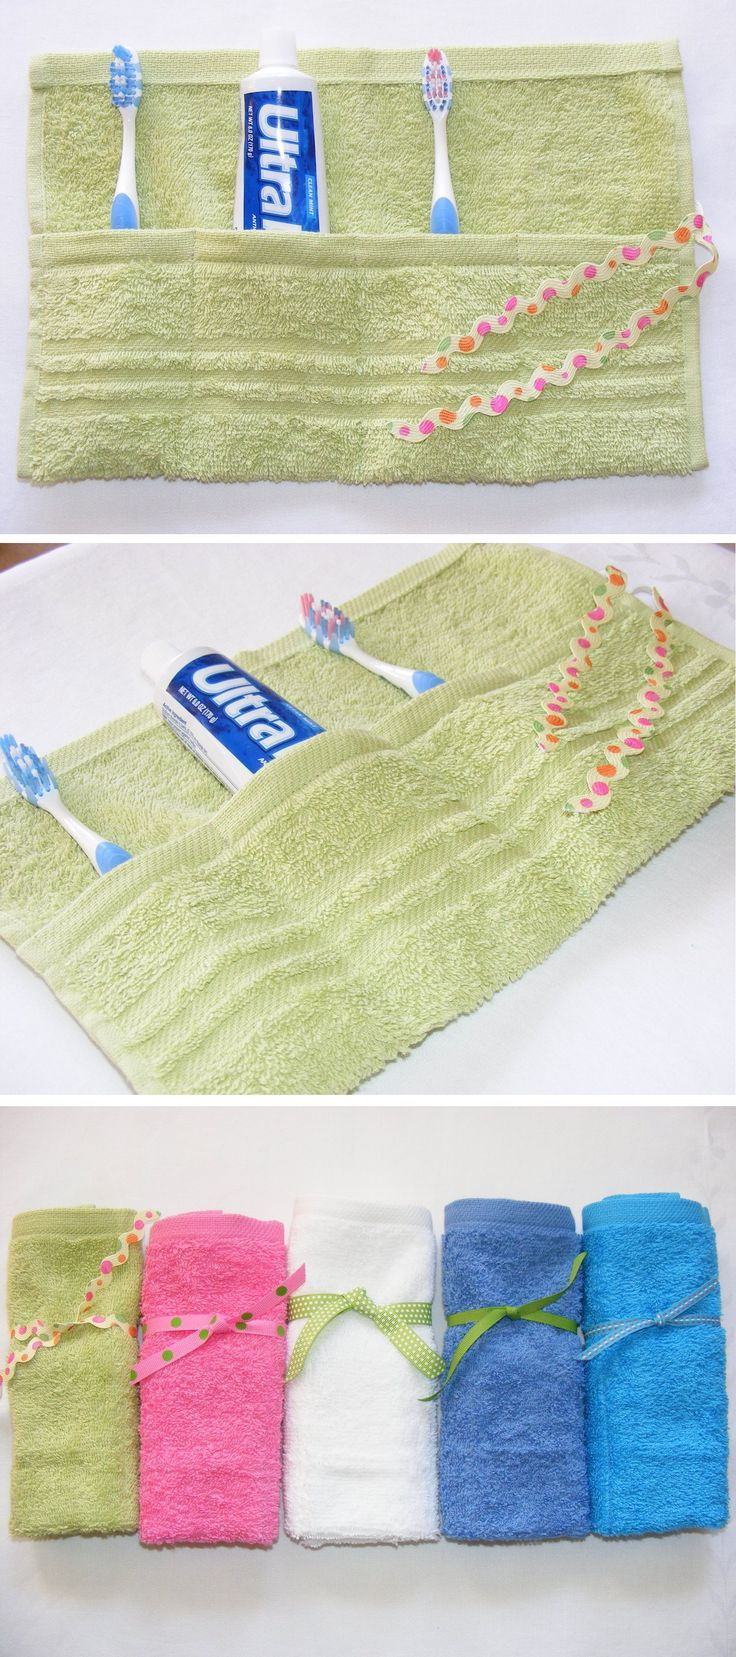 What a great idea!  Keep the mess in the towel then throw the towel in the laundry when you get home from your trip @Rachel Clark